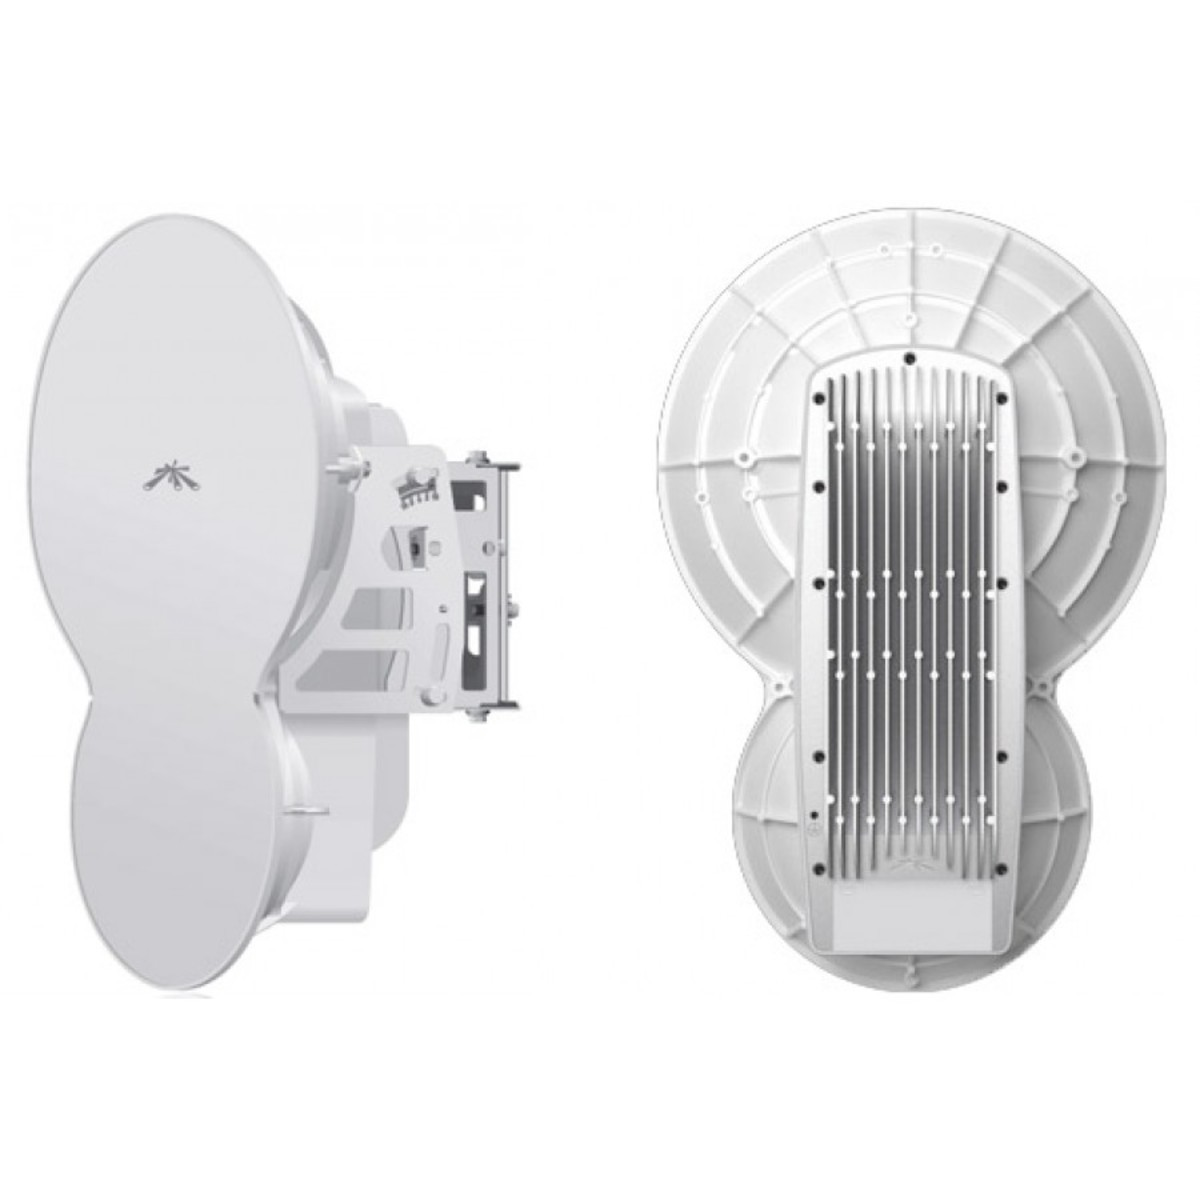 Ubiquiti Airfiber 24 Ghz Wireless Point To Point Radio 1.4+ Gbps